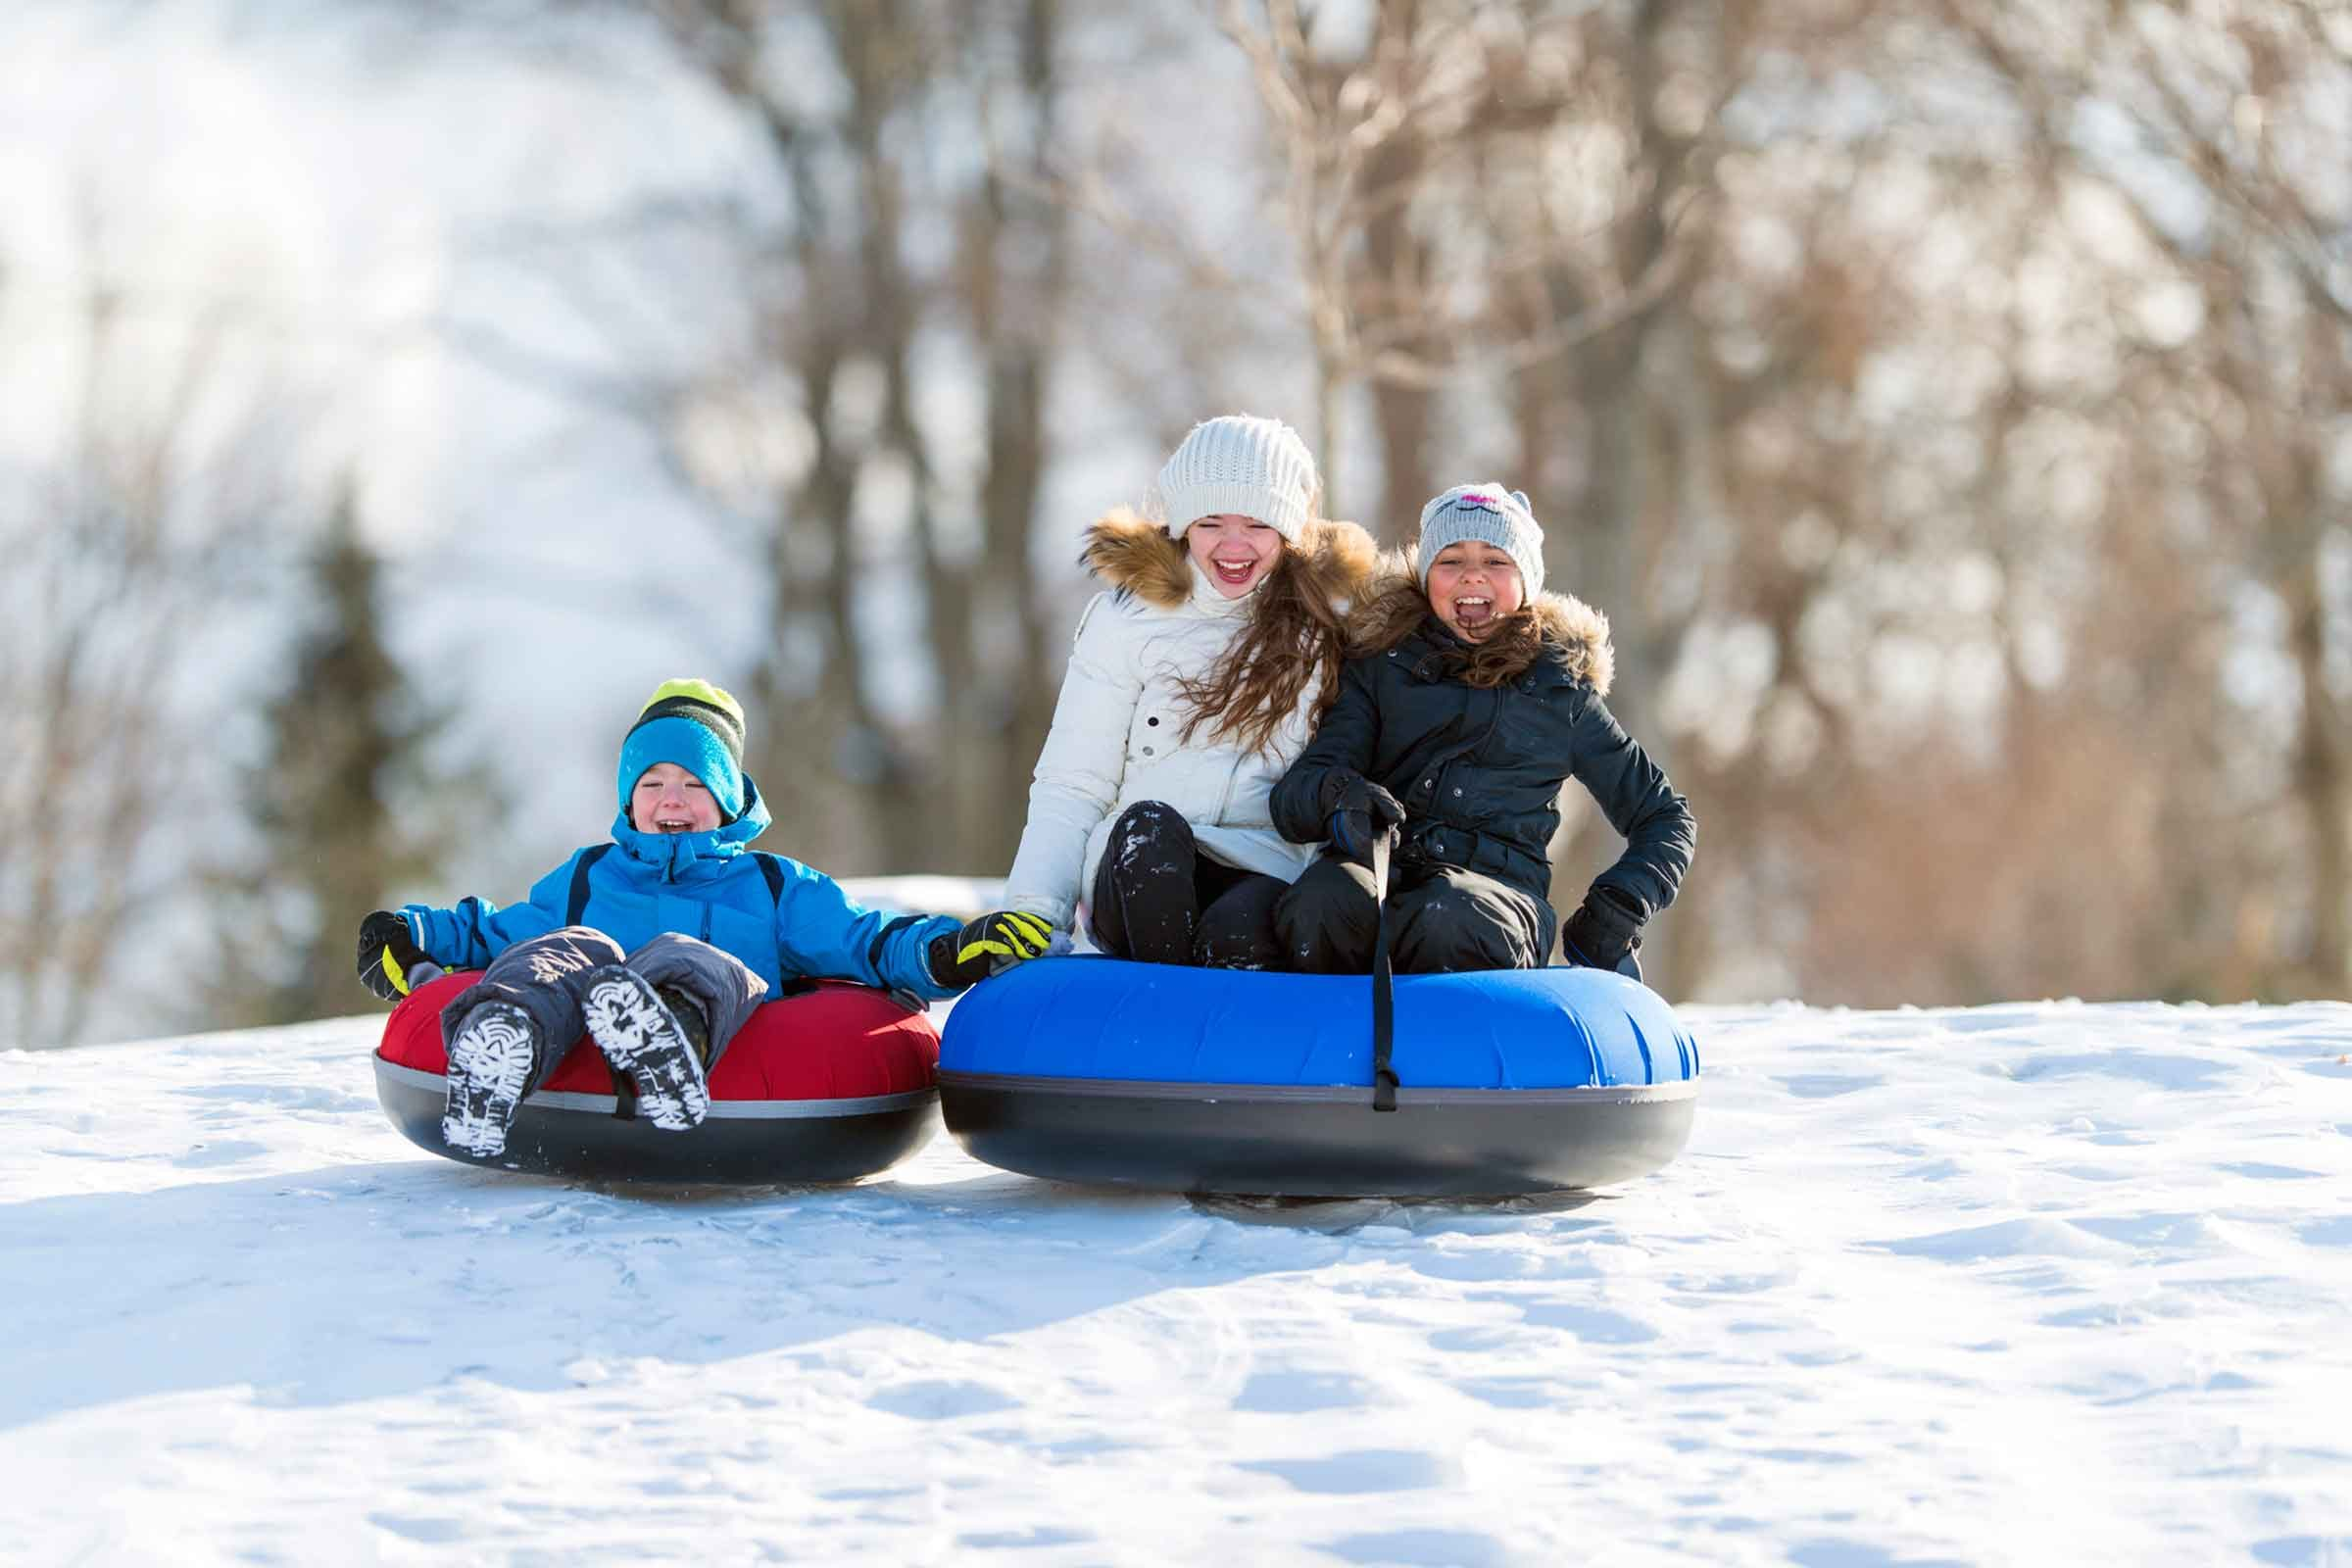 Snow Day Activities For Your Whole Family